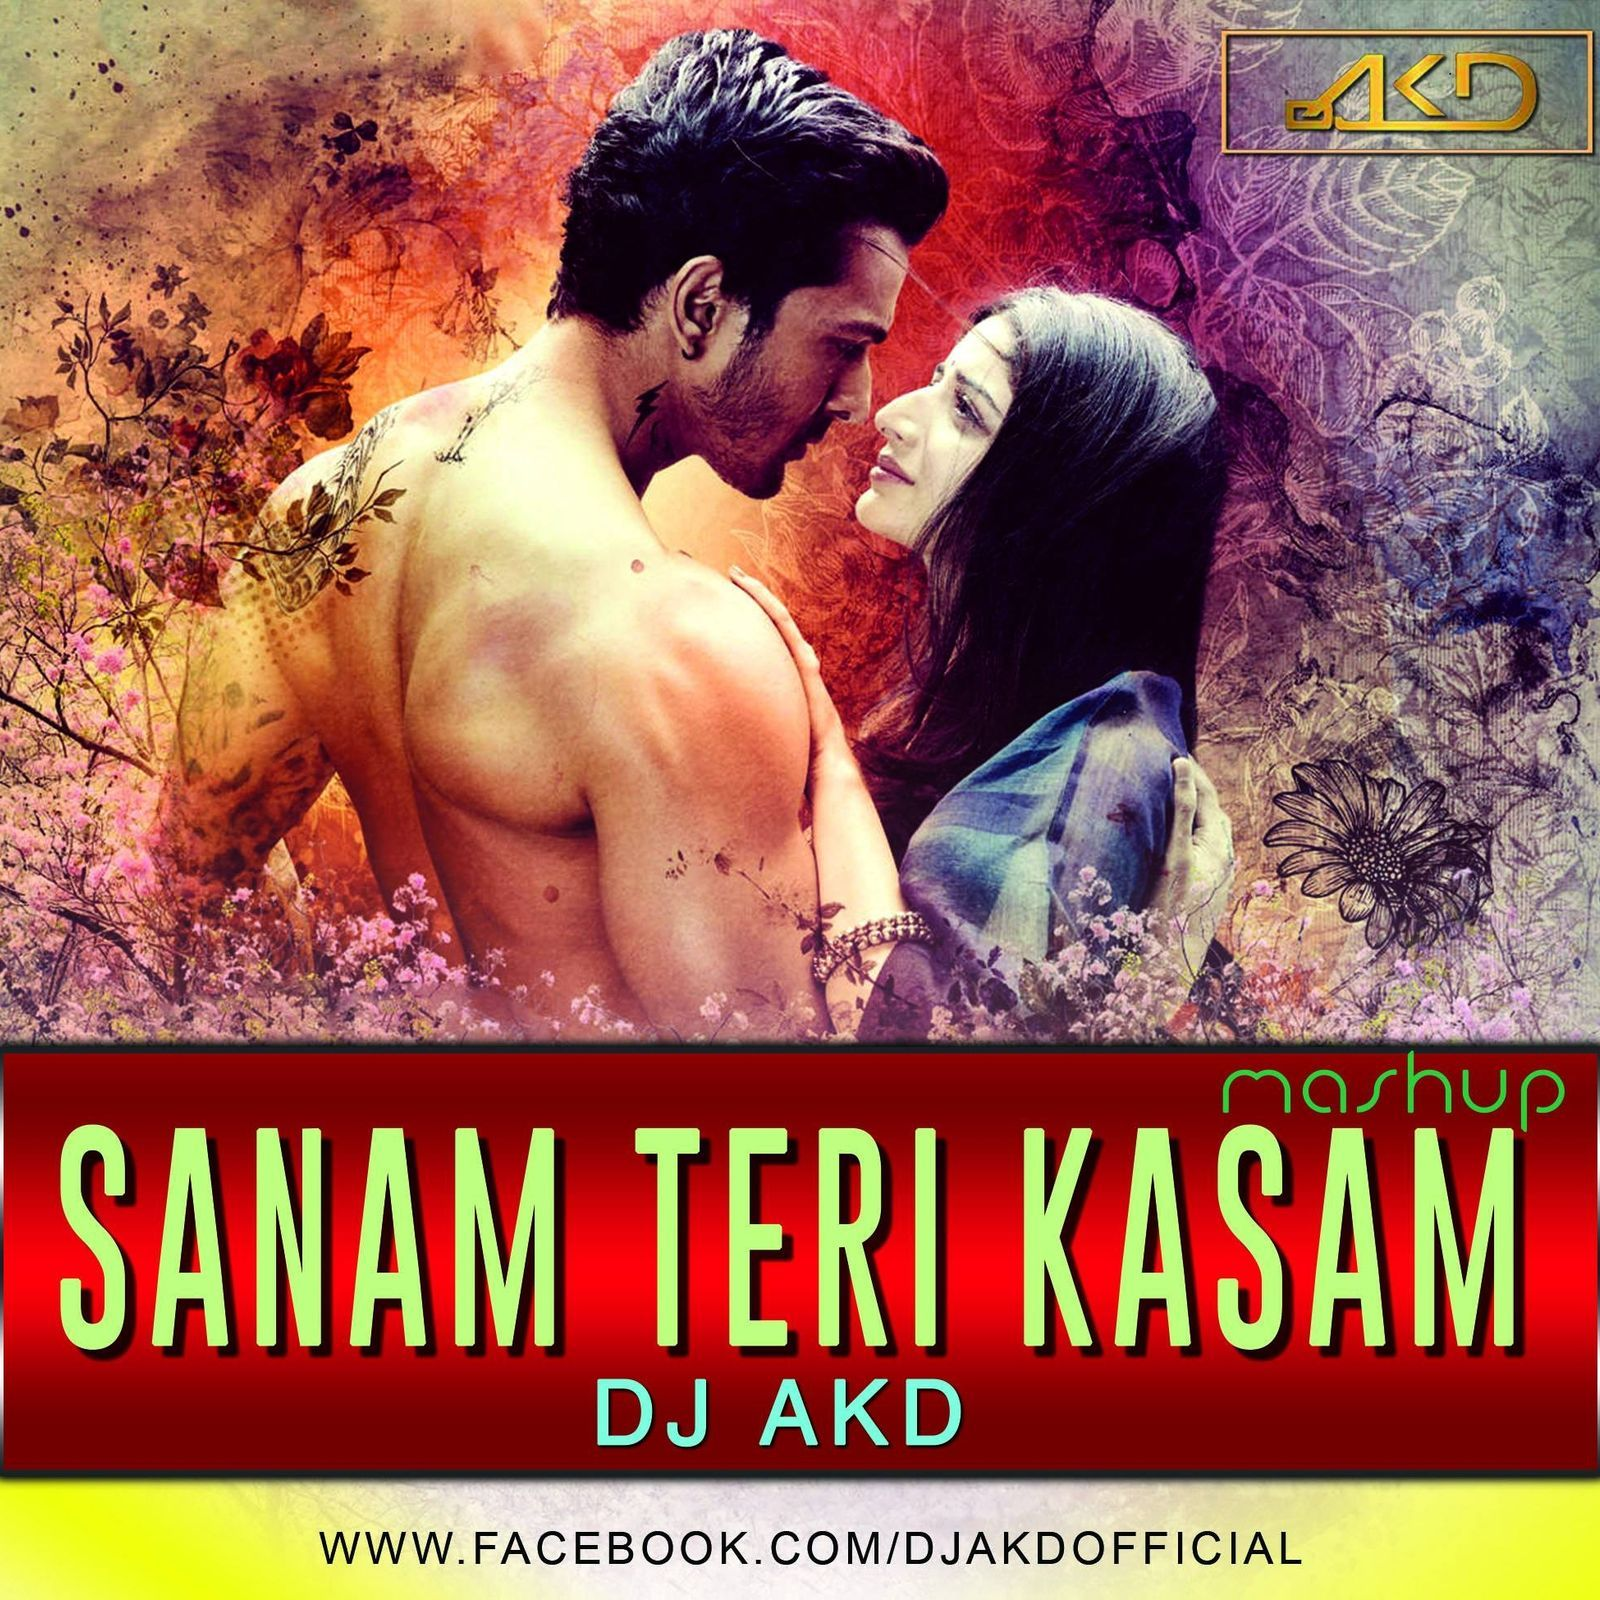 Download song sanam teri kasam female